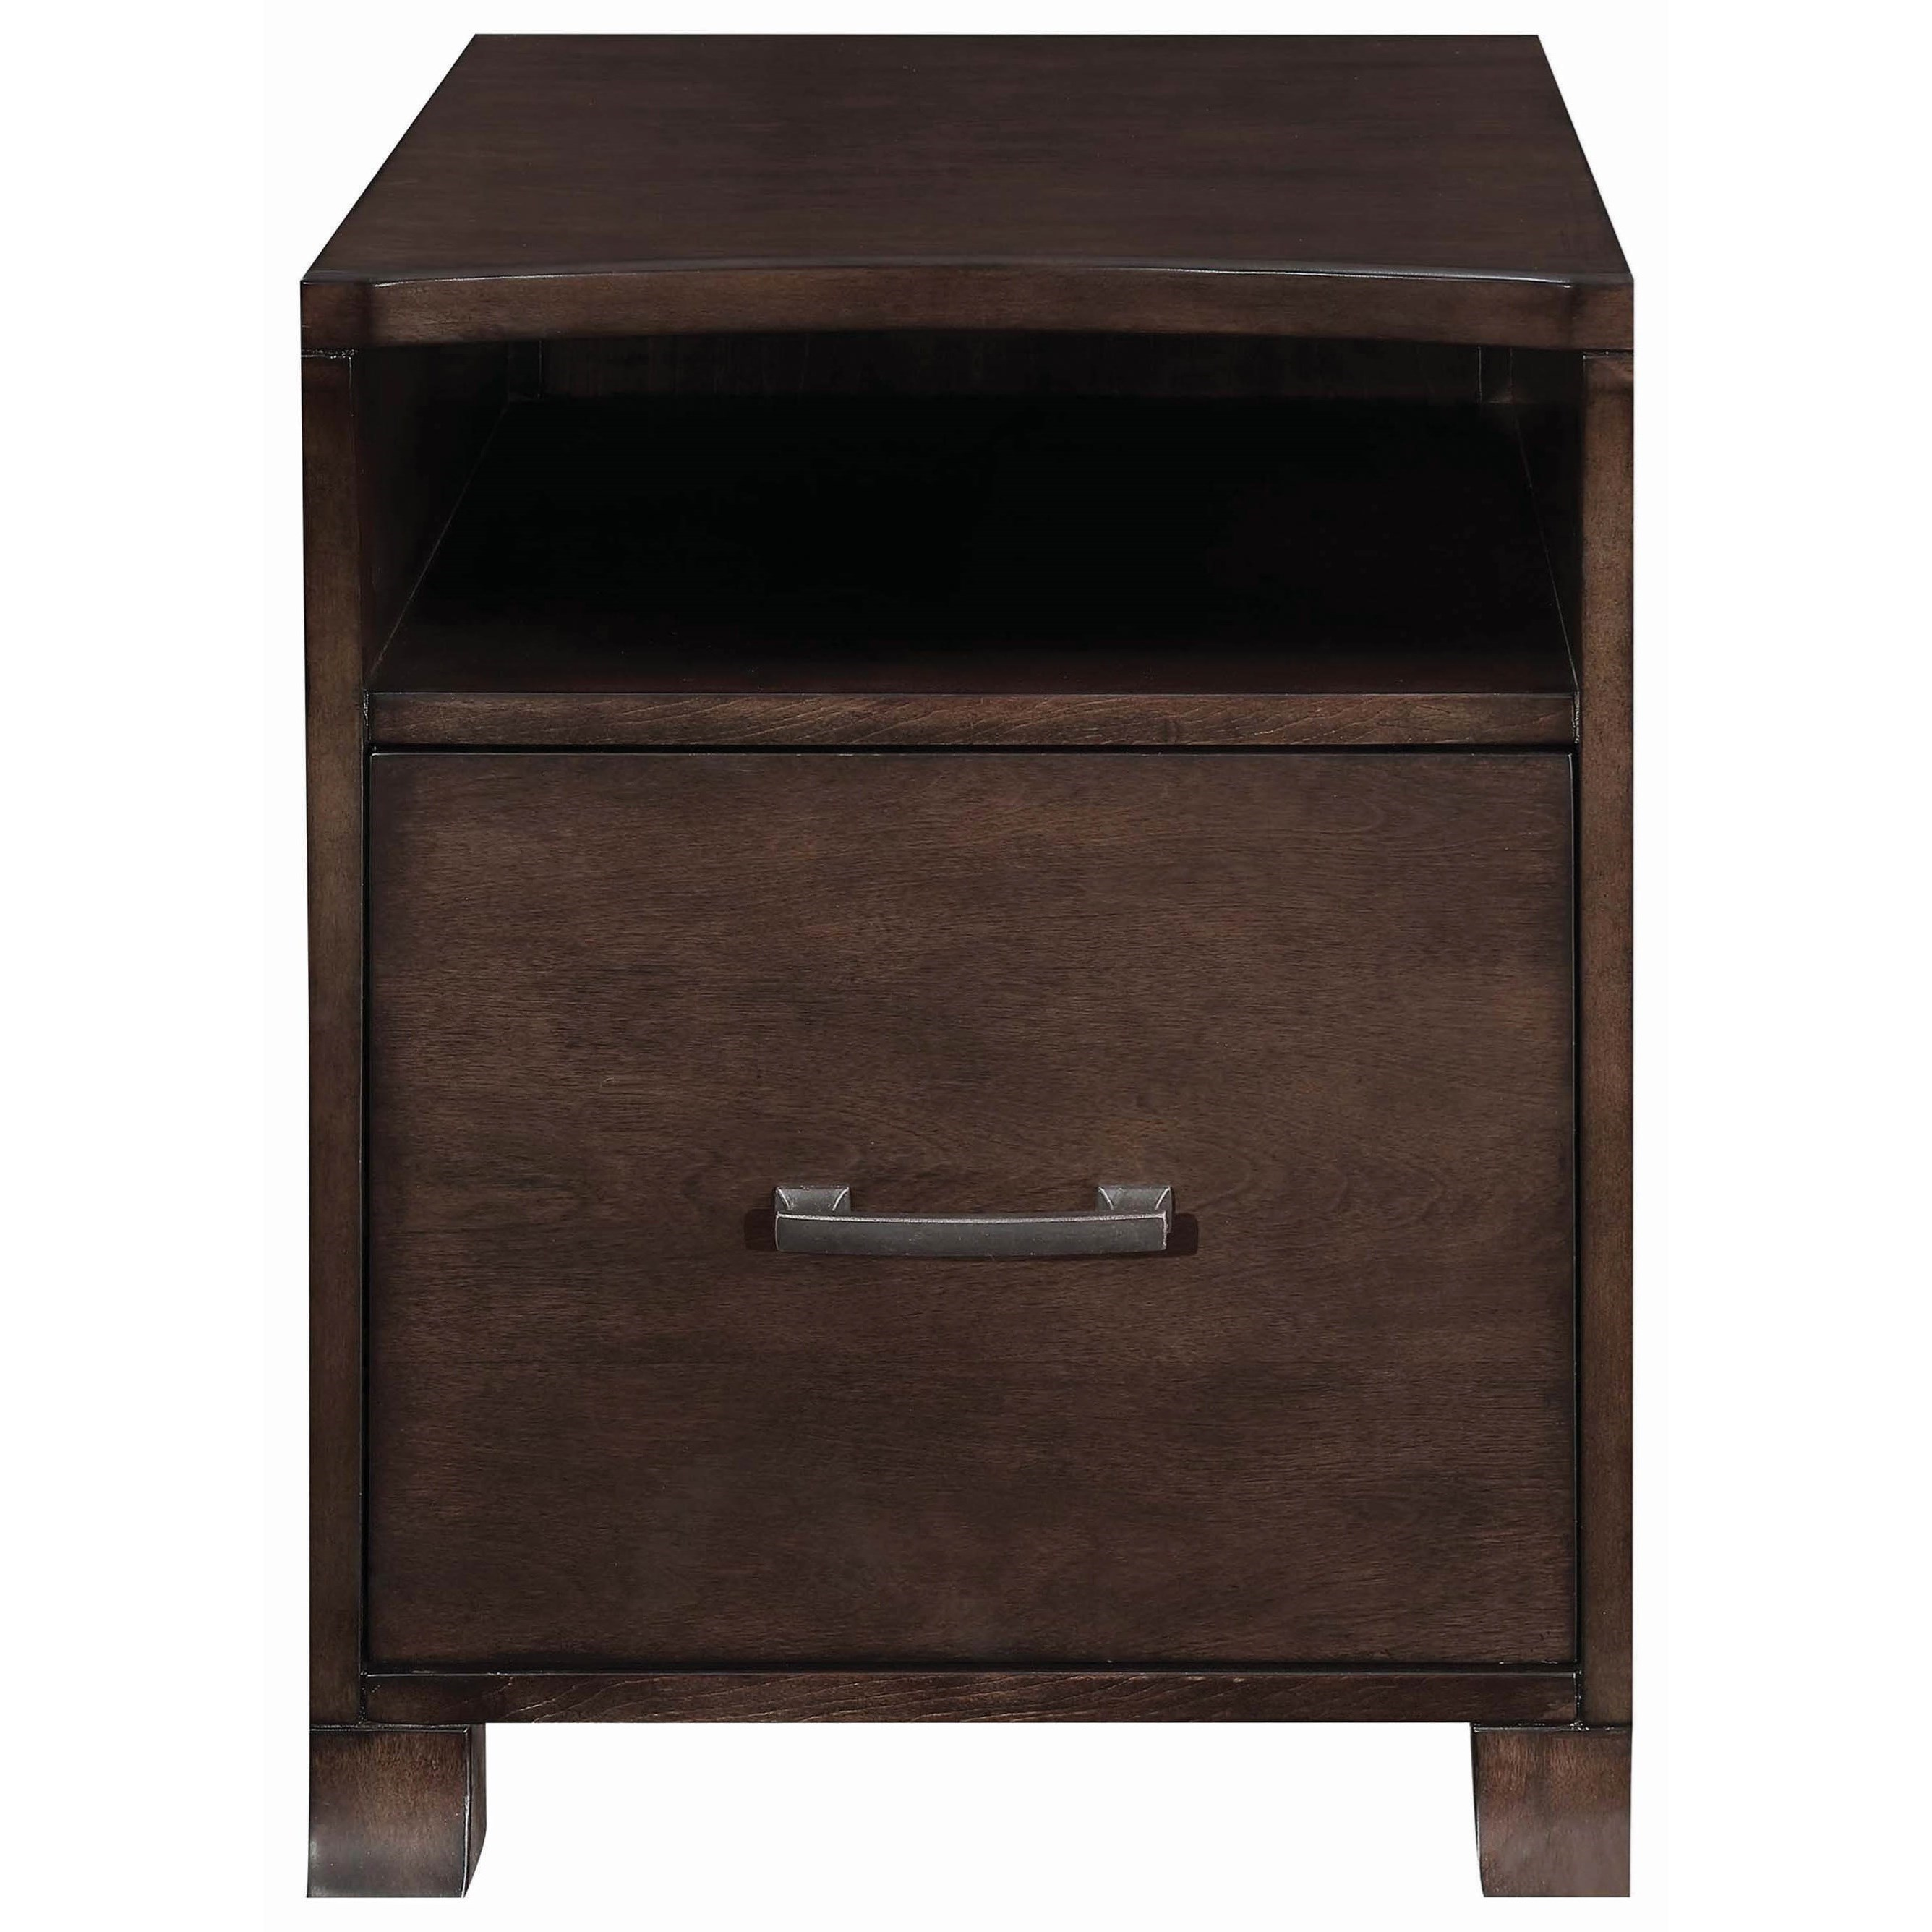 Scott Living Home Office File Cabinet - Item Number: 801754